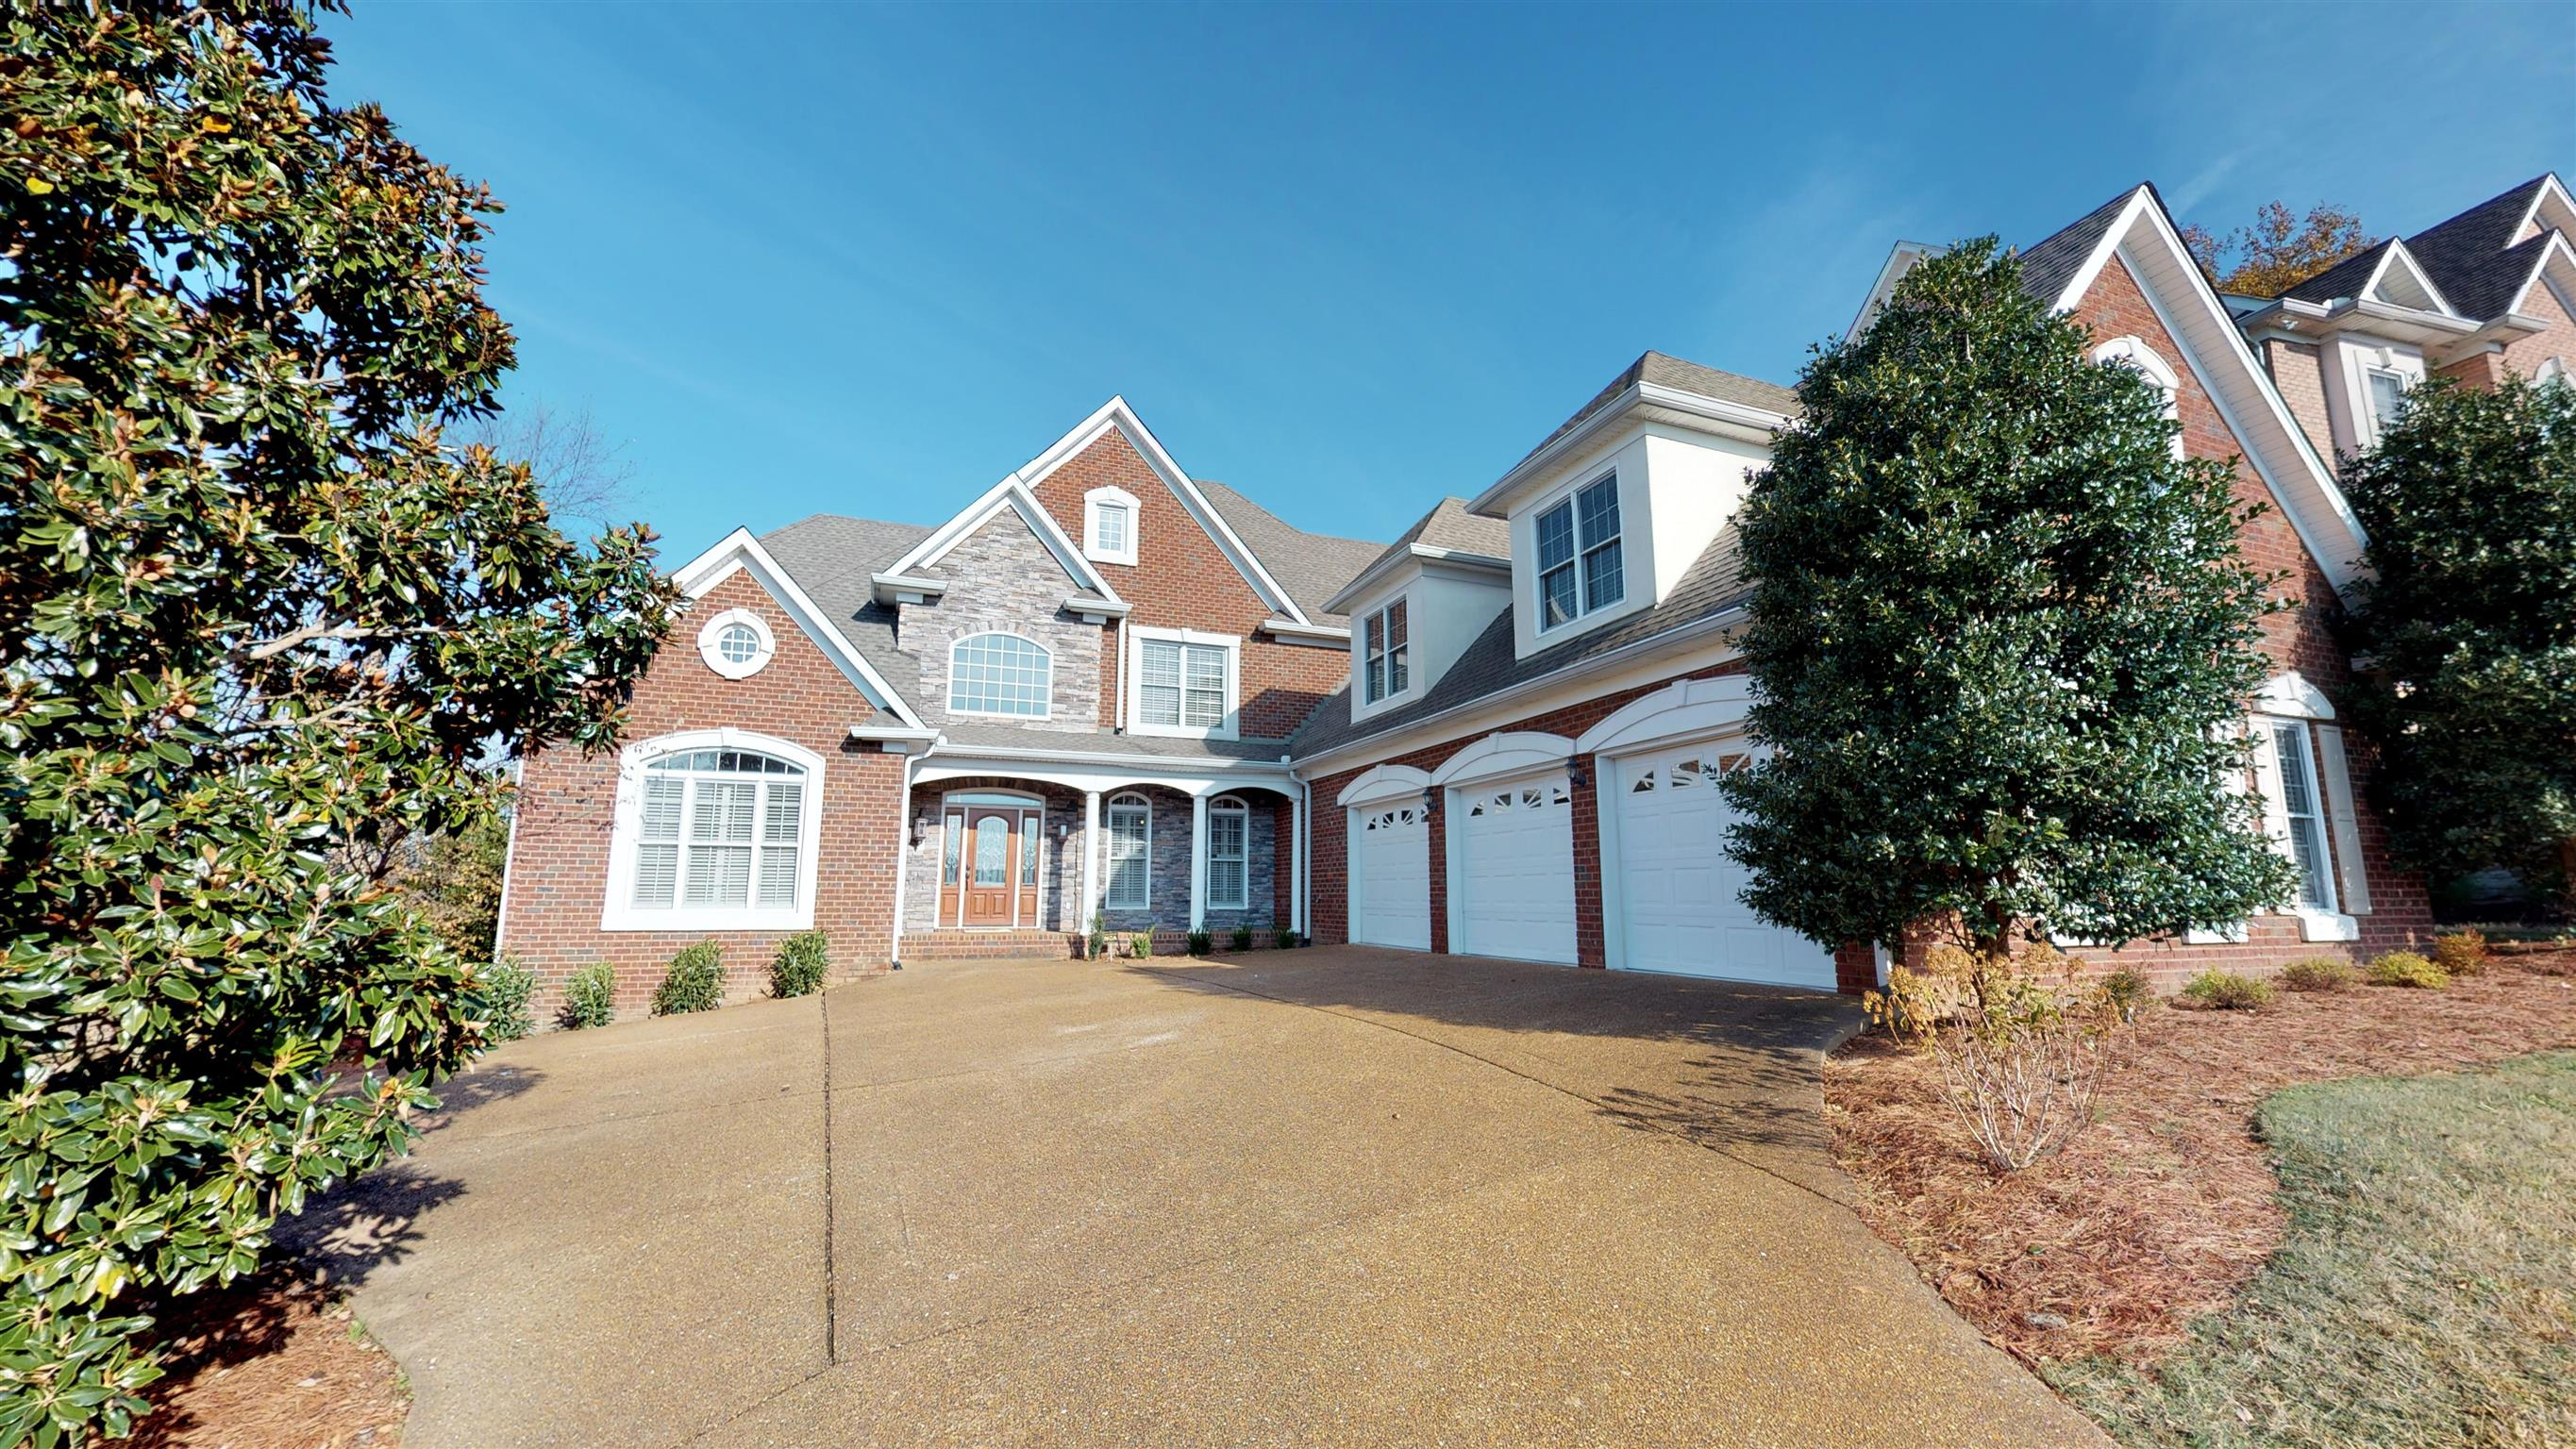 1268 12 Stones Xing, Goodlettsville, TN 37072 - Goodlettsville, TN real estate listing